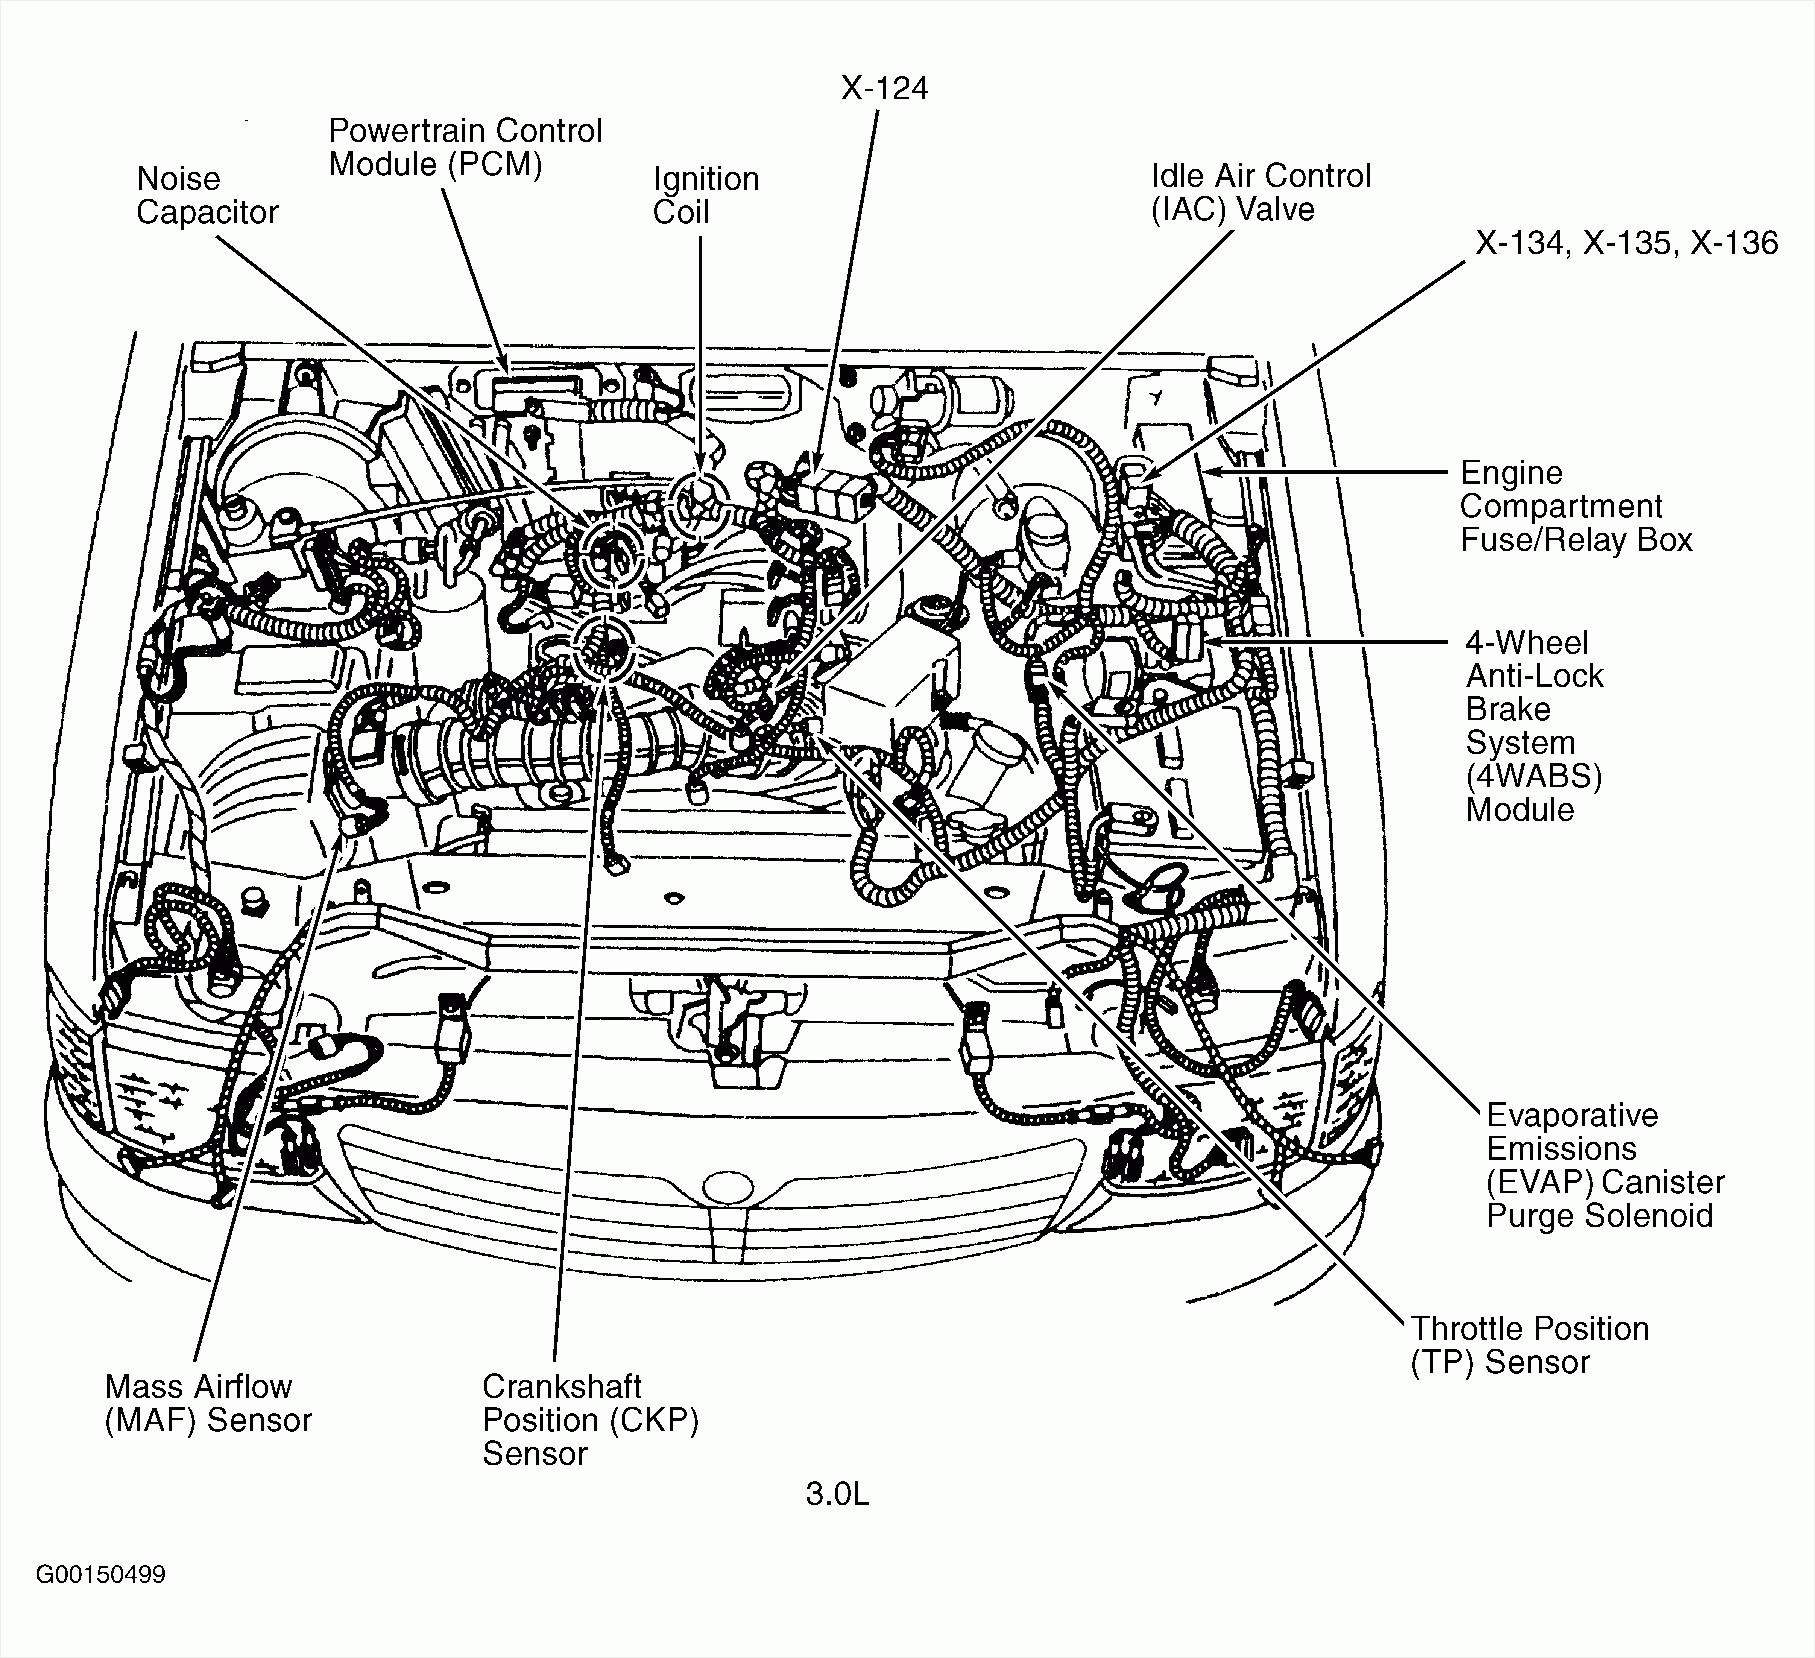 Mazda 626 engine diagram 4 hyn capecoral bootsvermietung de \u2022 mazda 3.0 v6 engine mazda 626 parts diagram data wiring diagram rh 13 mto reginaundcaroline de mazda 6 motor diagram 2002 mazda 626 engine diagram